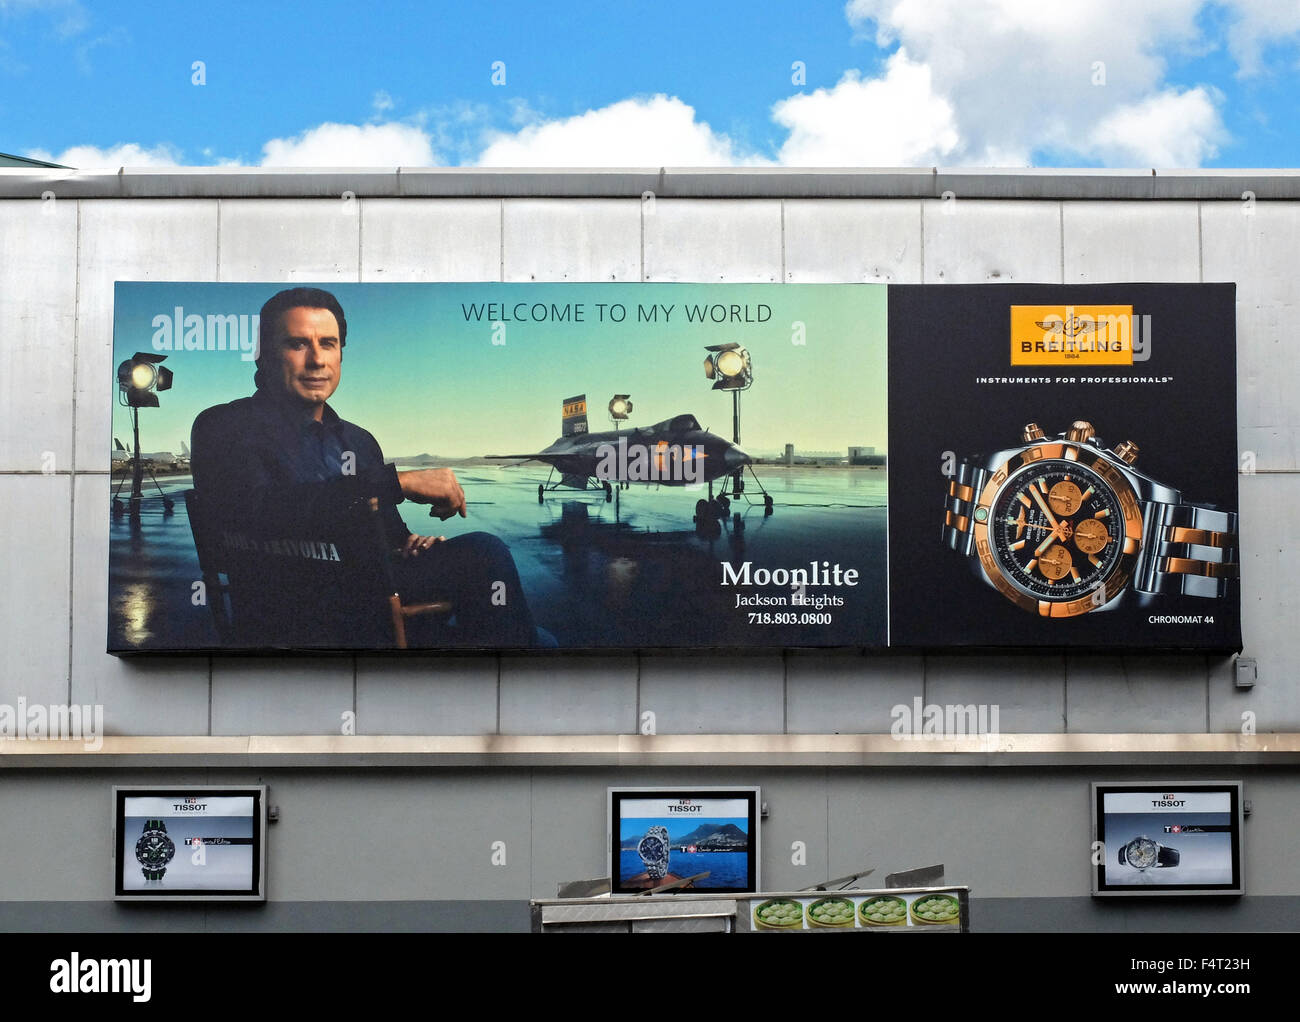 An advertisement for Breitling watches with a photo of John Travolta in Jackson Heights, Queens, New York. - Stock Image